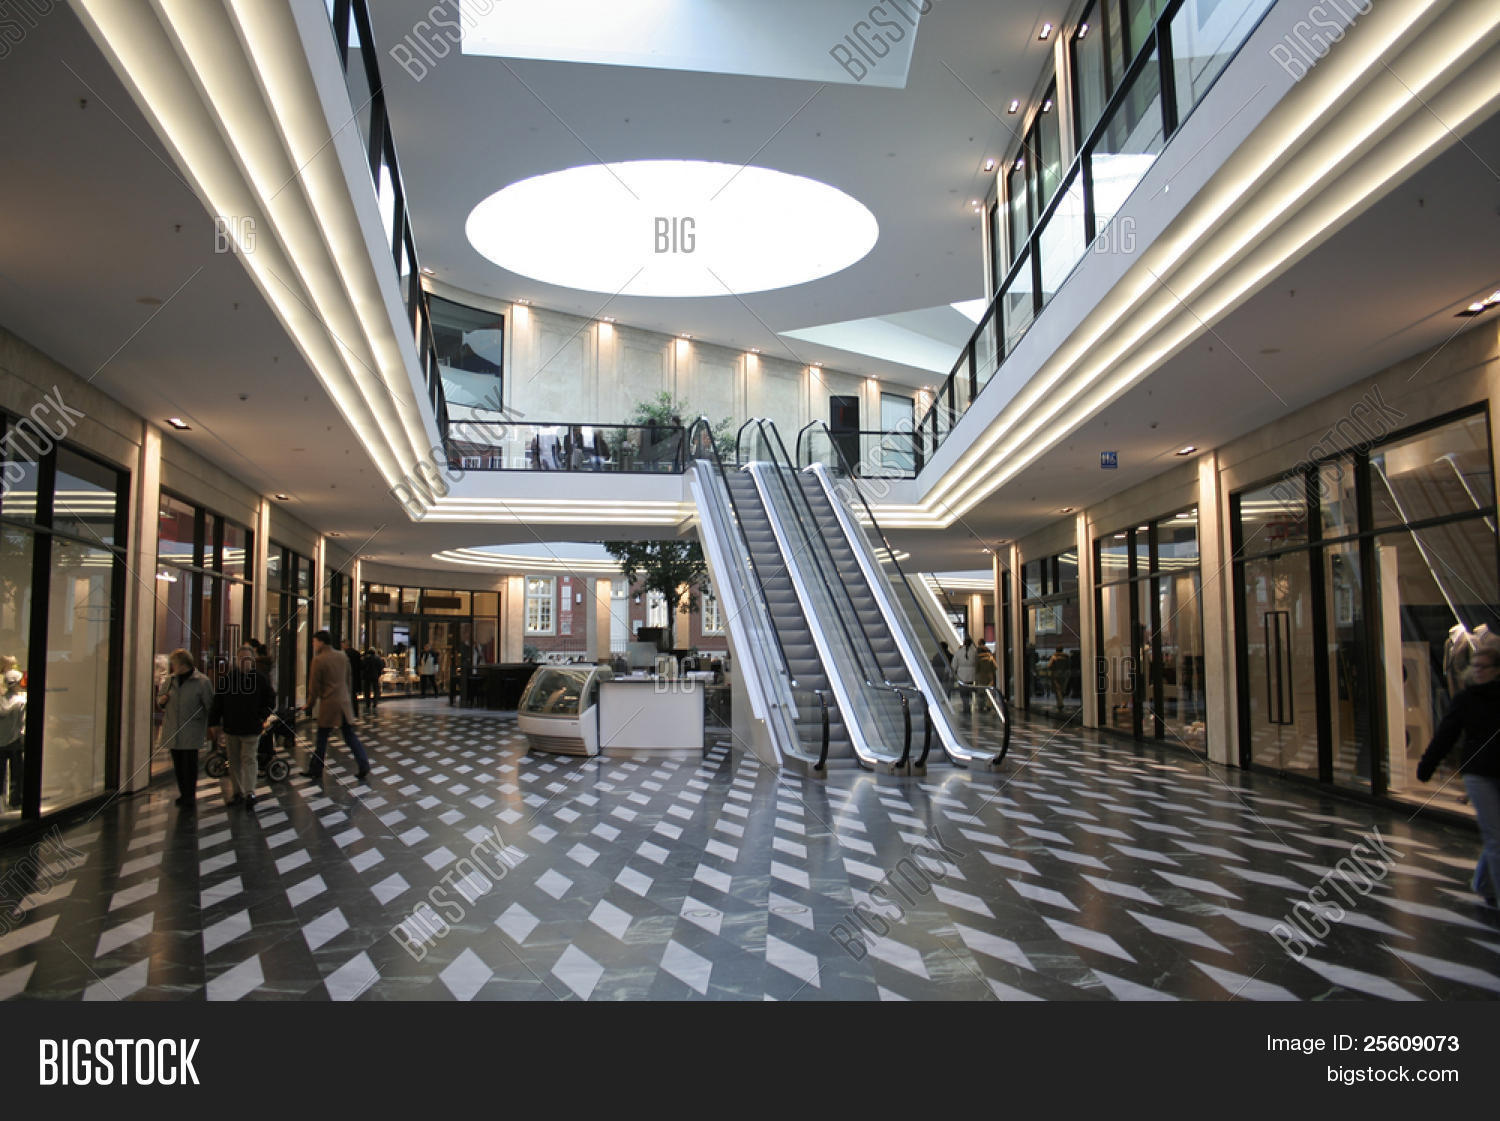 Shopping Mall Escalators Image Amp Photo Bigstock